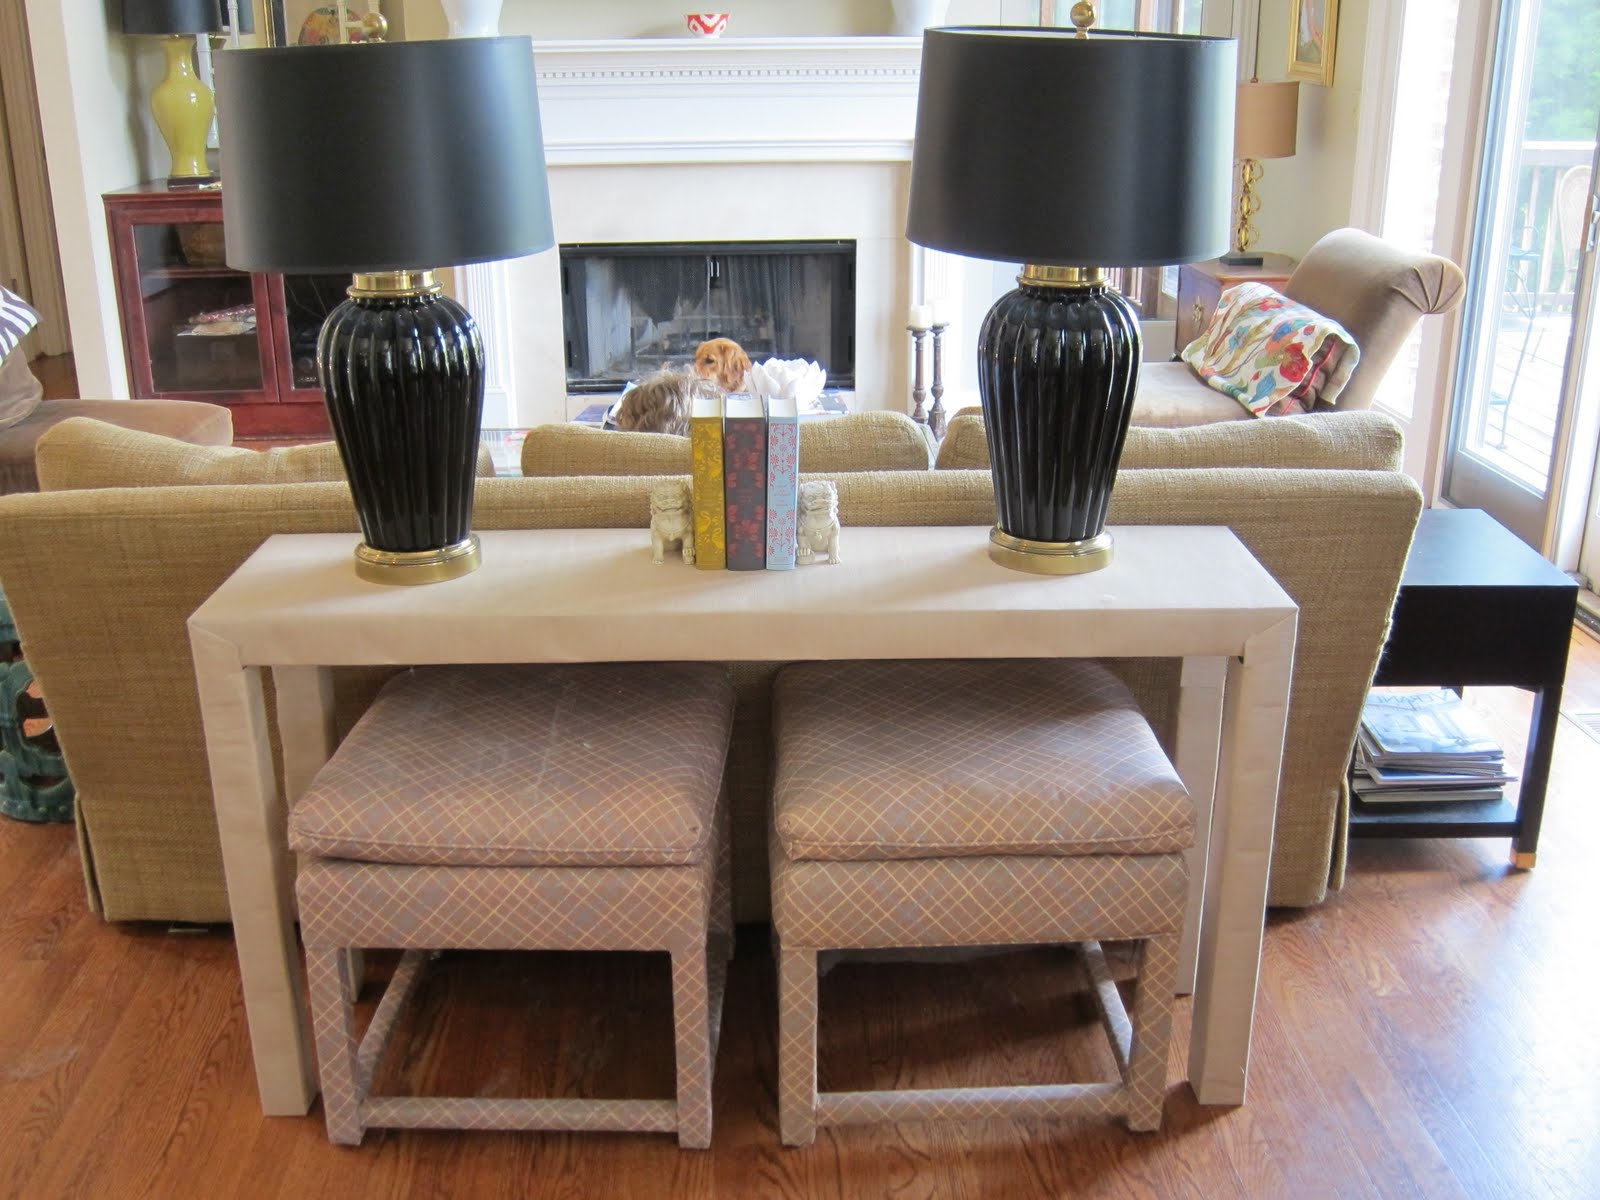 coffee table with chairs underneath 03